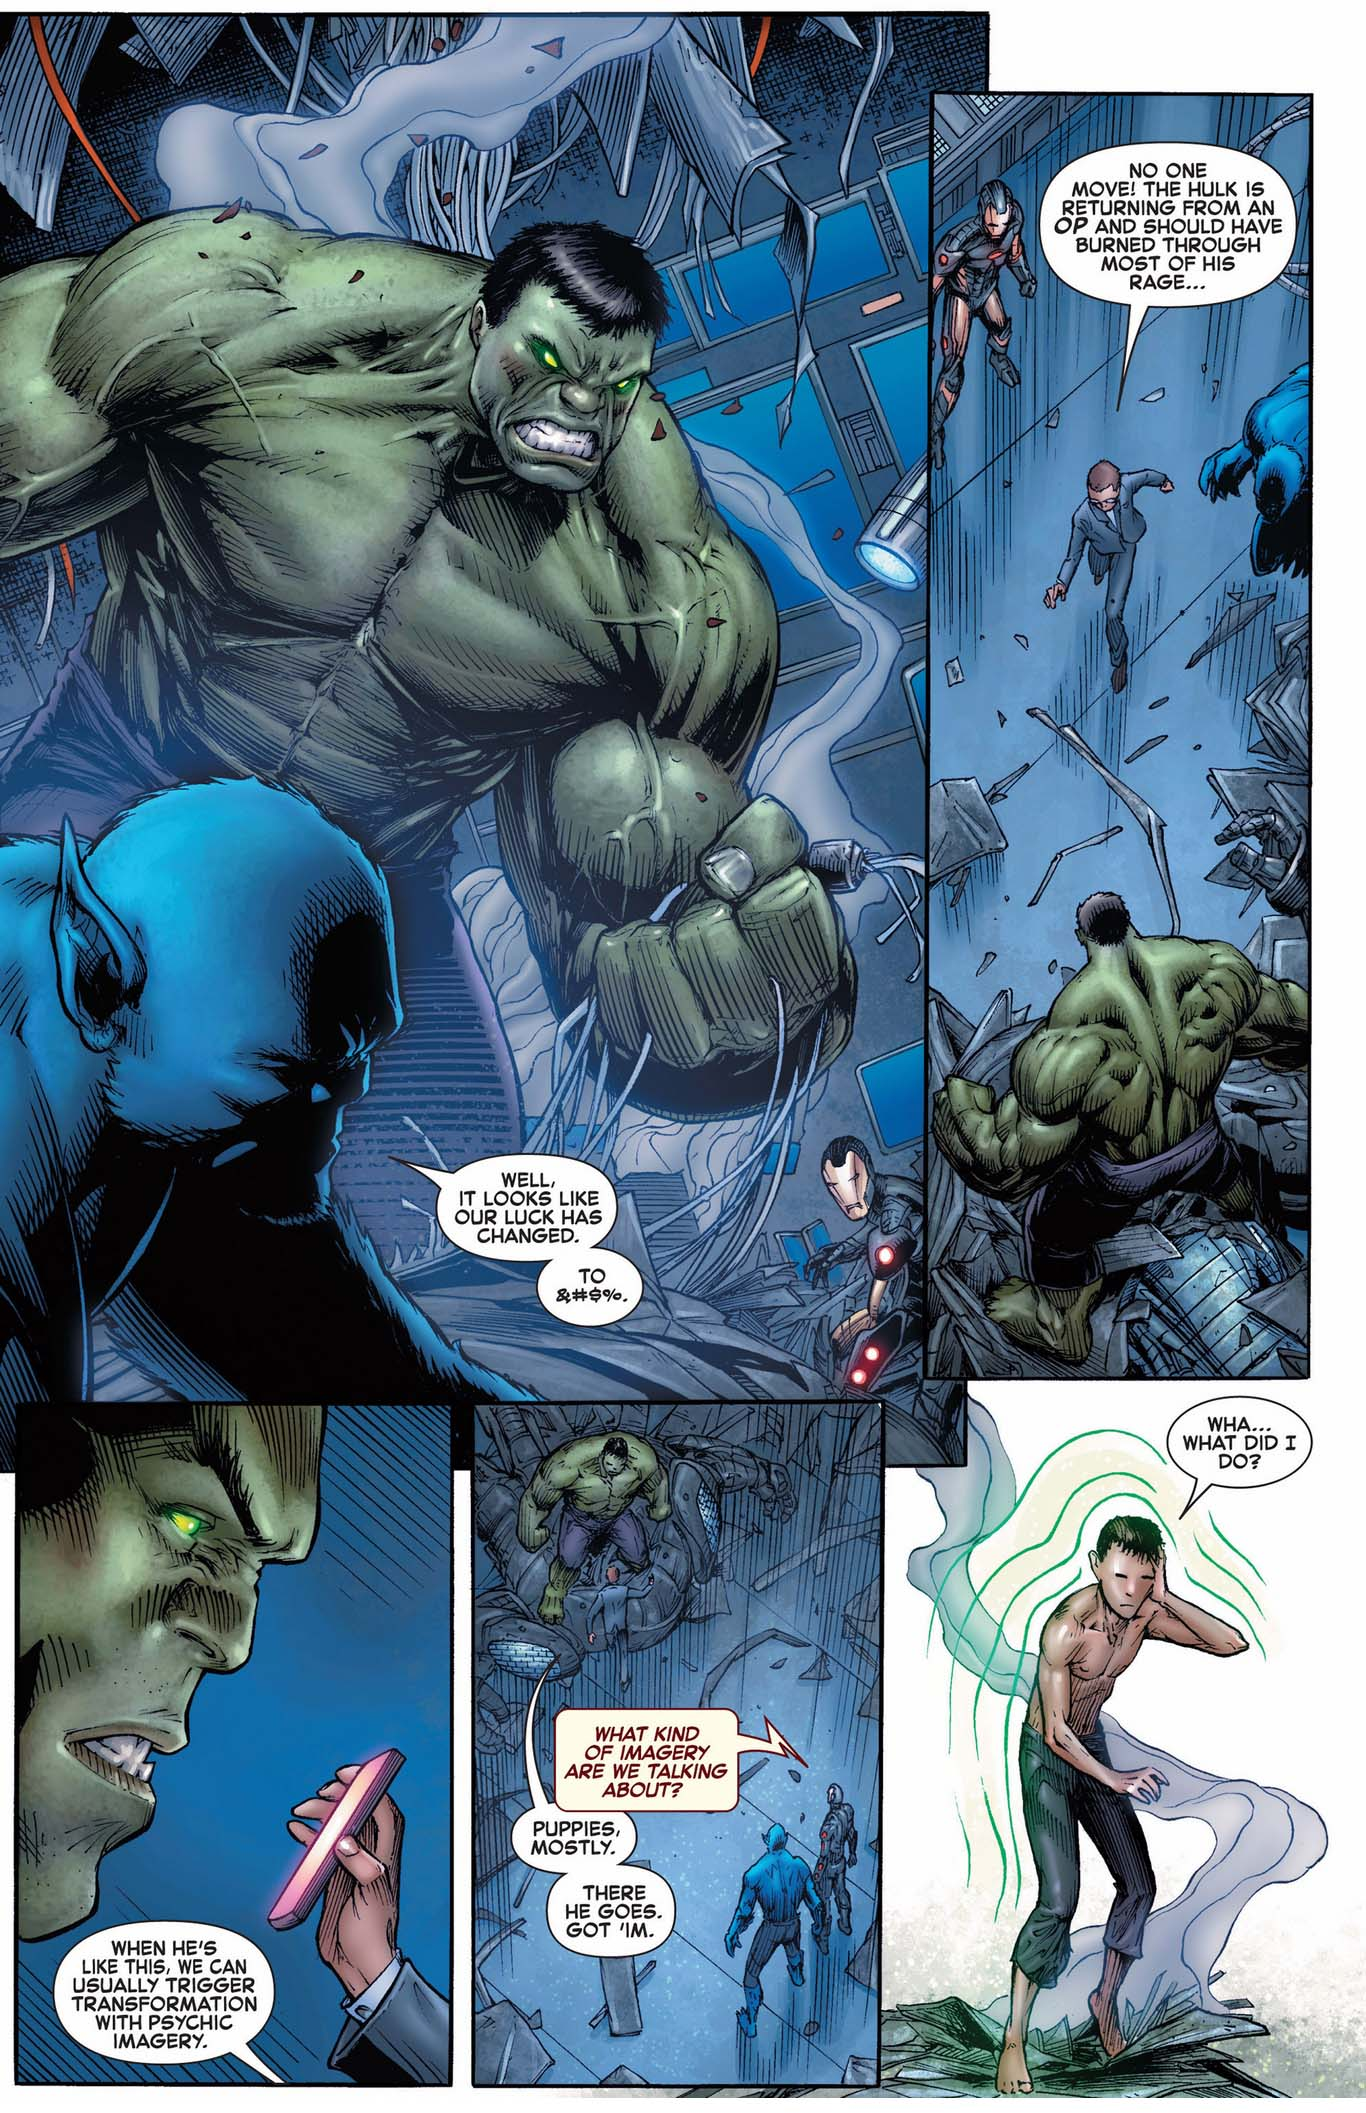 The Hulk Comicnewbies